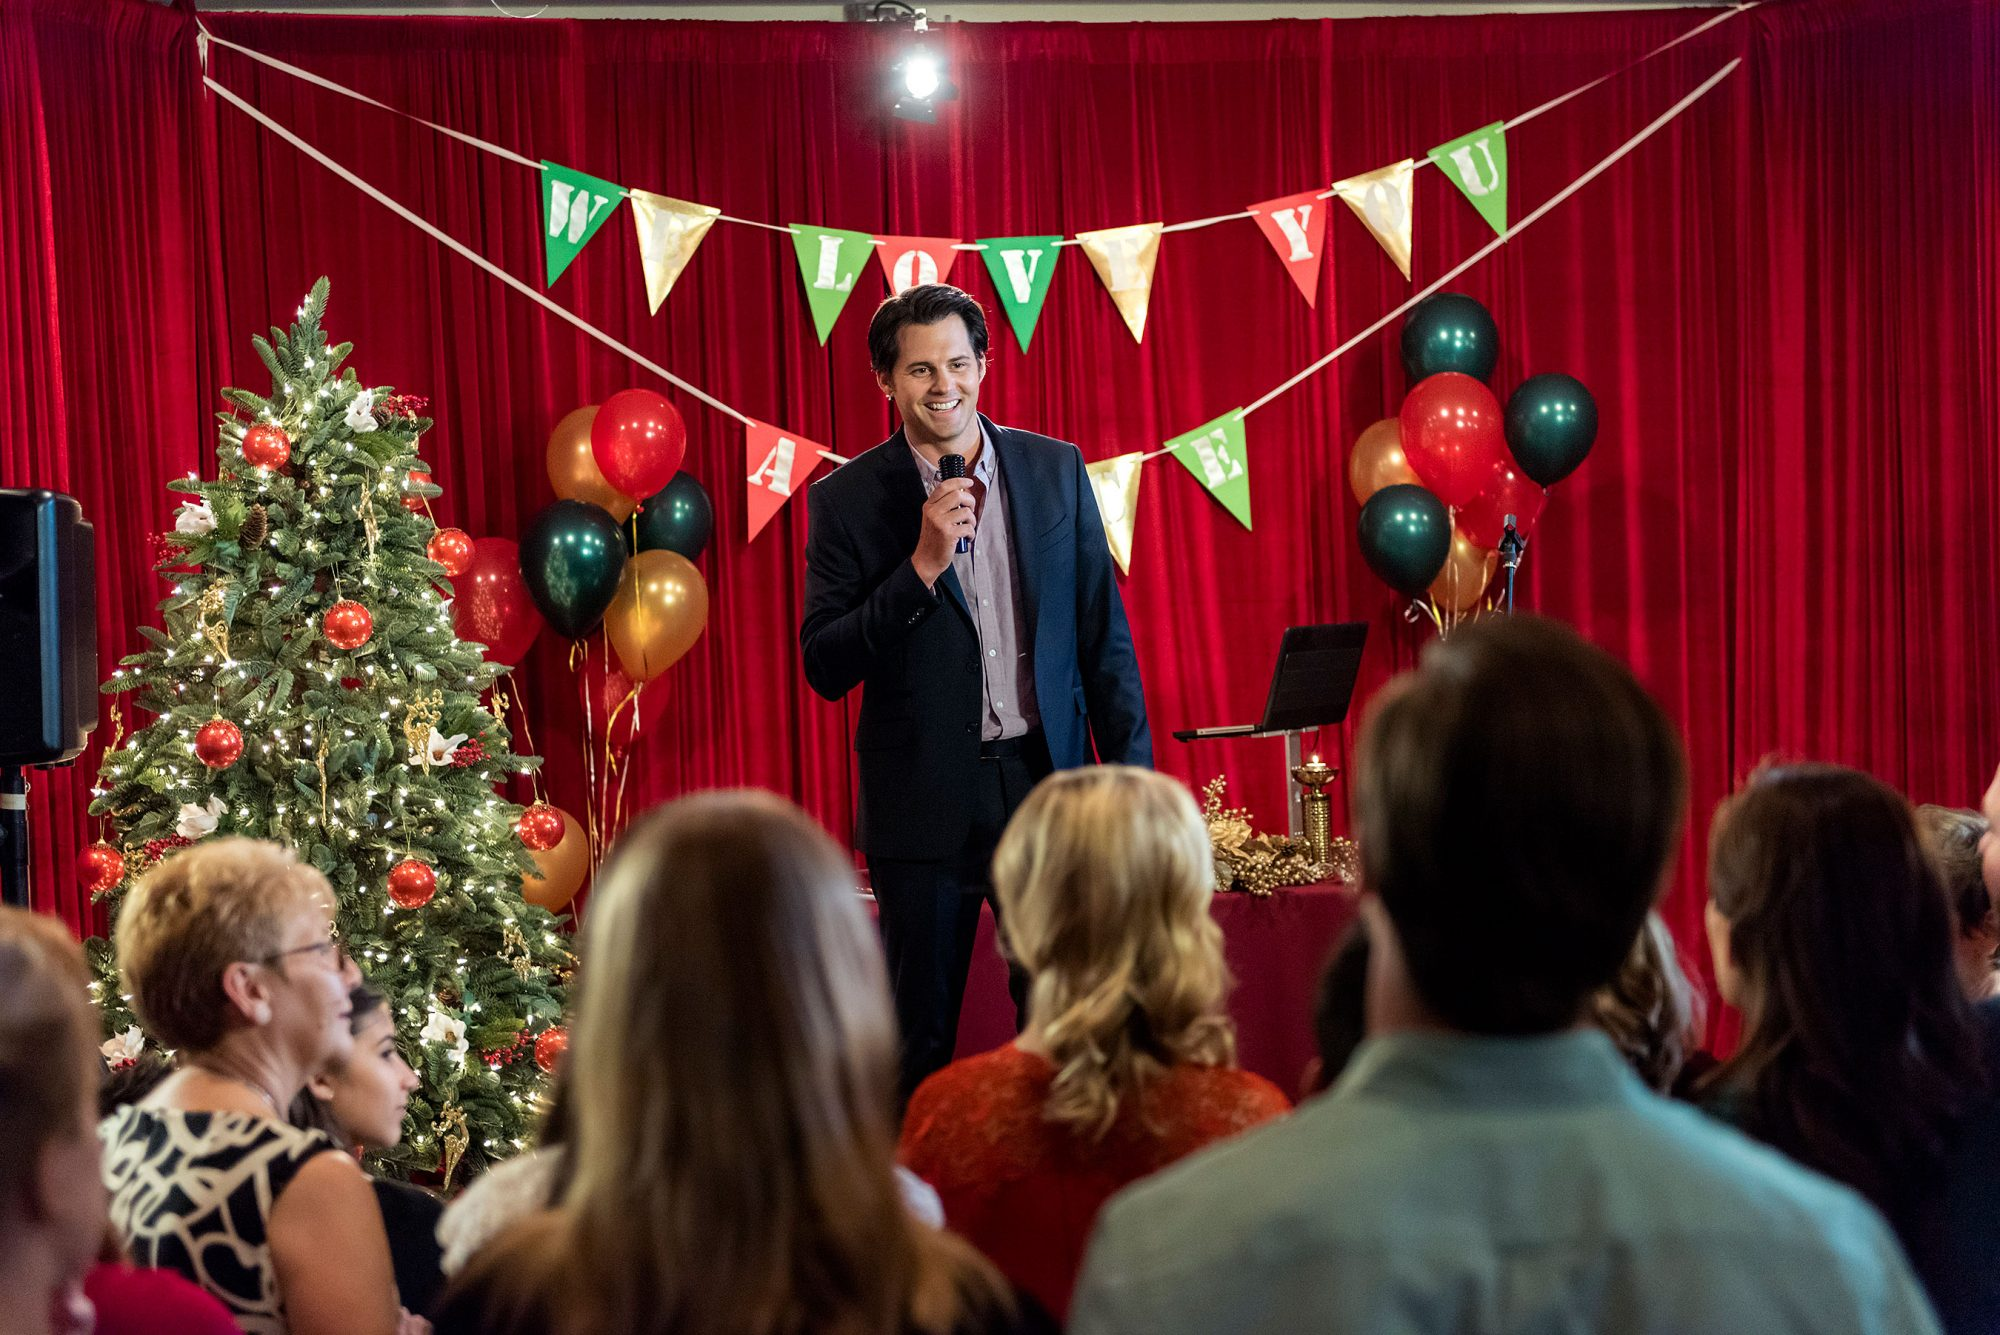 Small Town Christmas (Dec. 22, 9 p.m. ET/PT, Hallmark Movies & Mysteries)